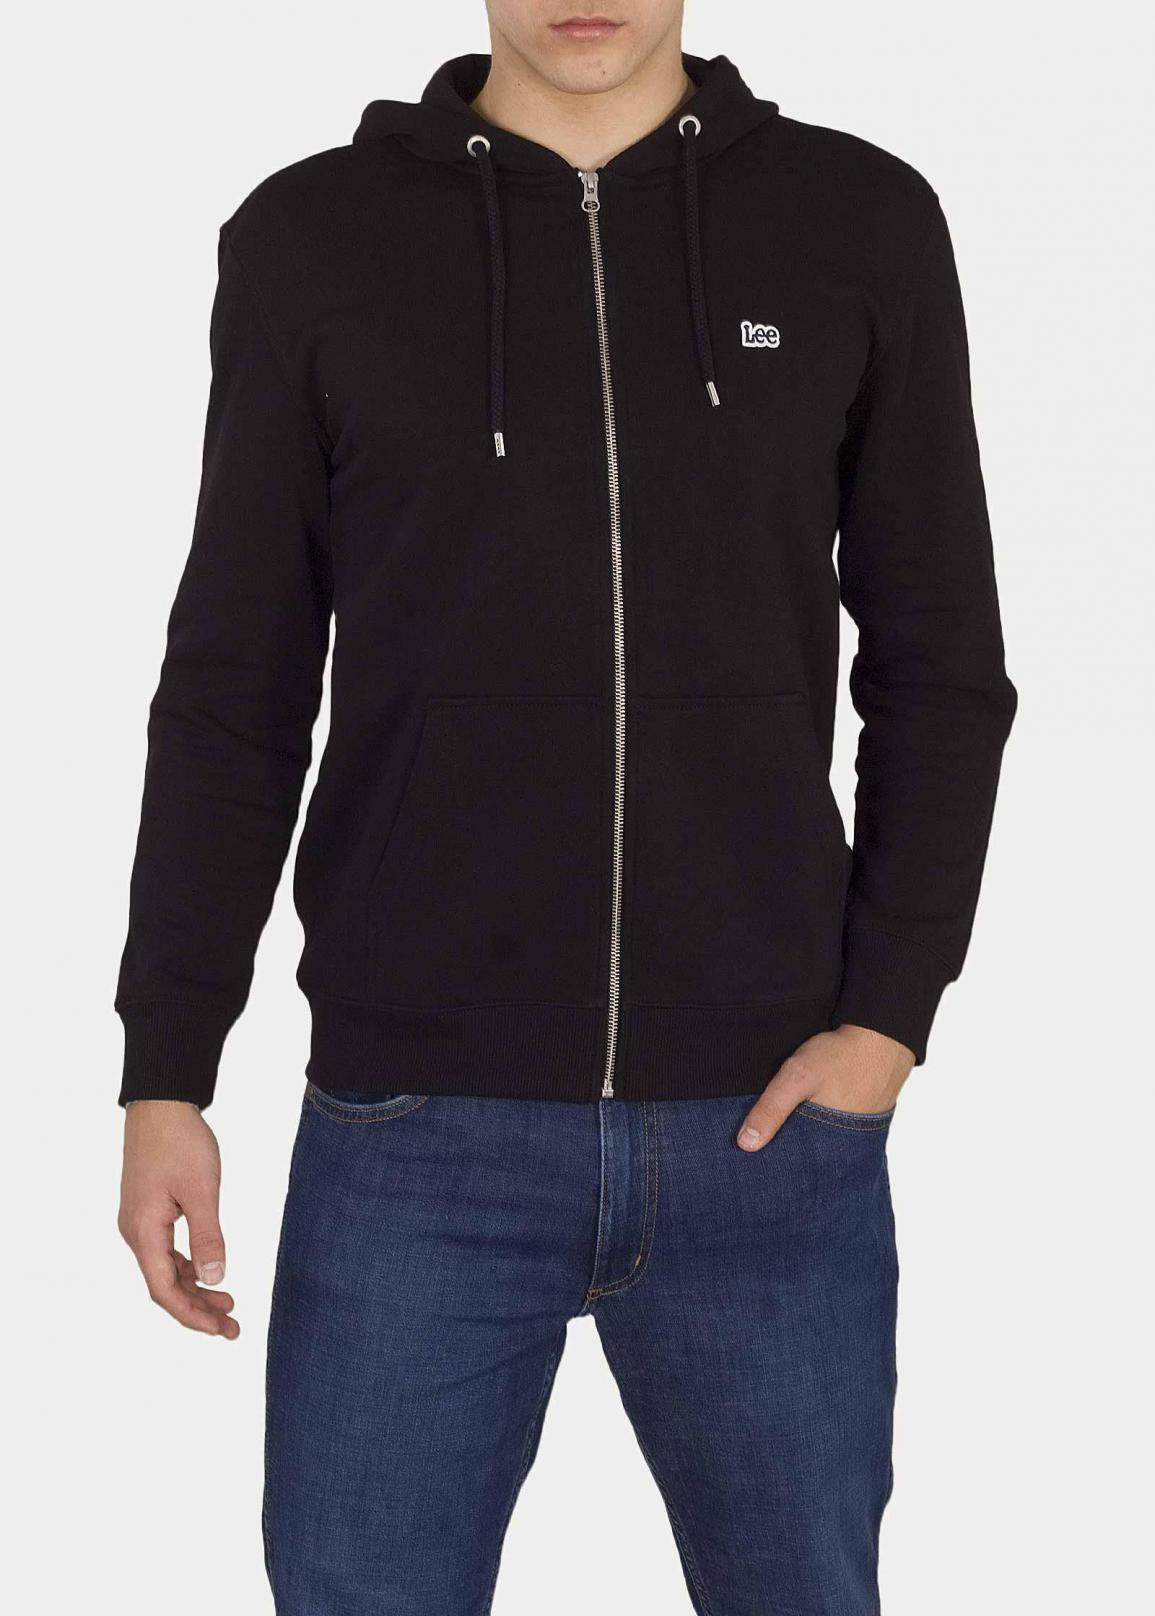 Lee® Basic Zip Throuh Hoody - Black